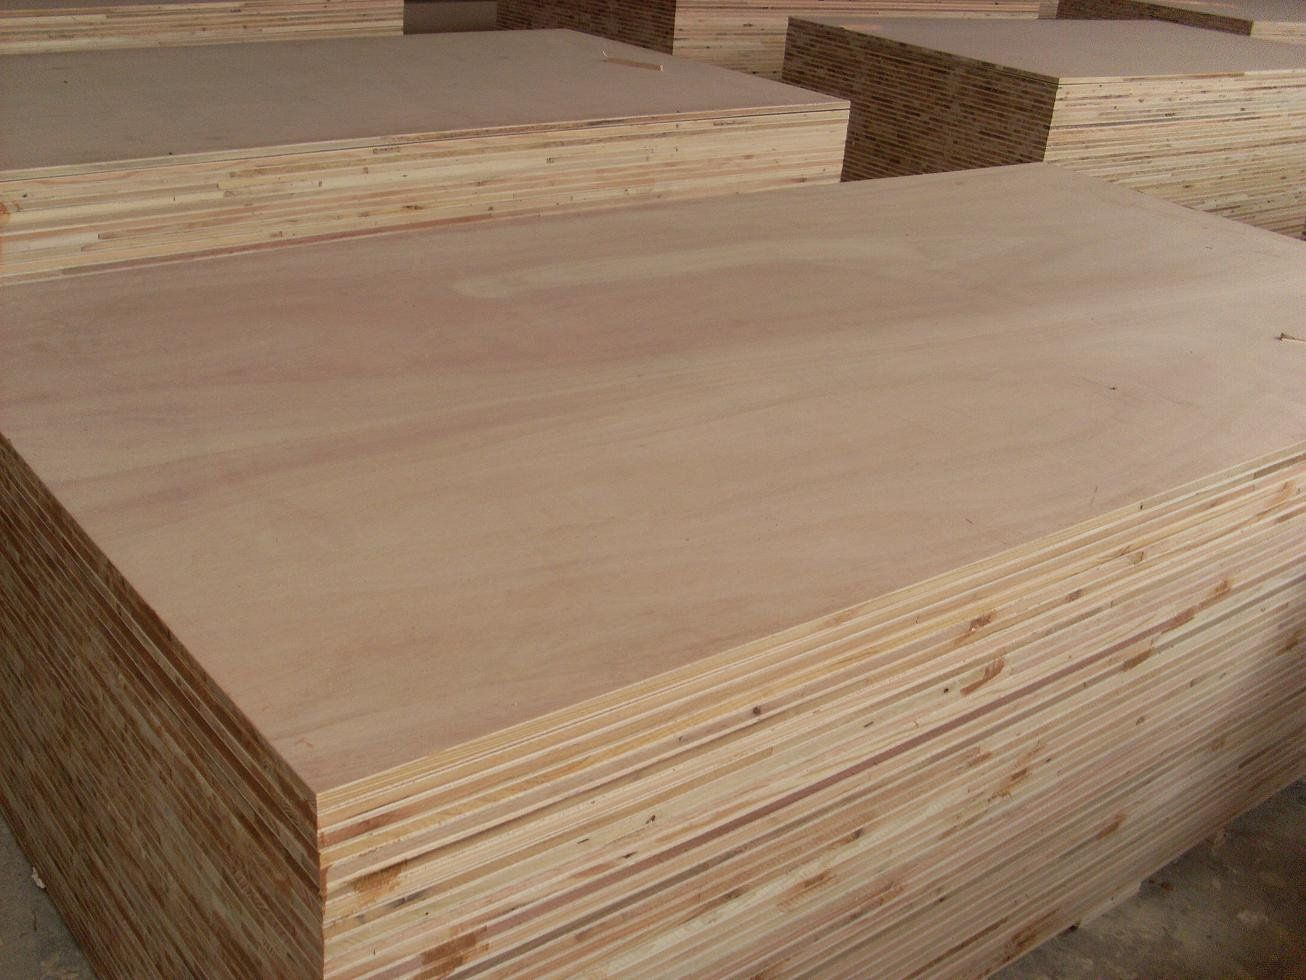 Plywood Block Board Blockboard Size 1220x2440x12 40mm Core Poplar Tung Hardwood Fir Face Back Okoume Bintangor Glue Mr E1e De Madera Madera Especies